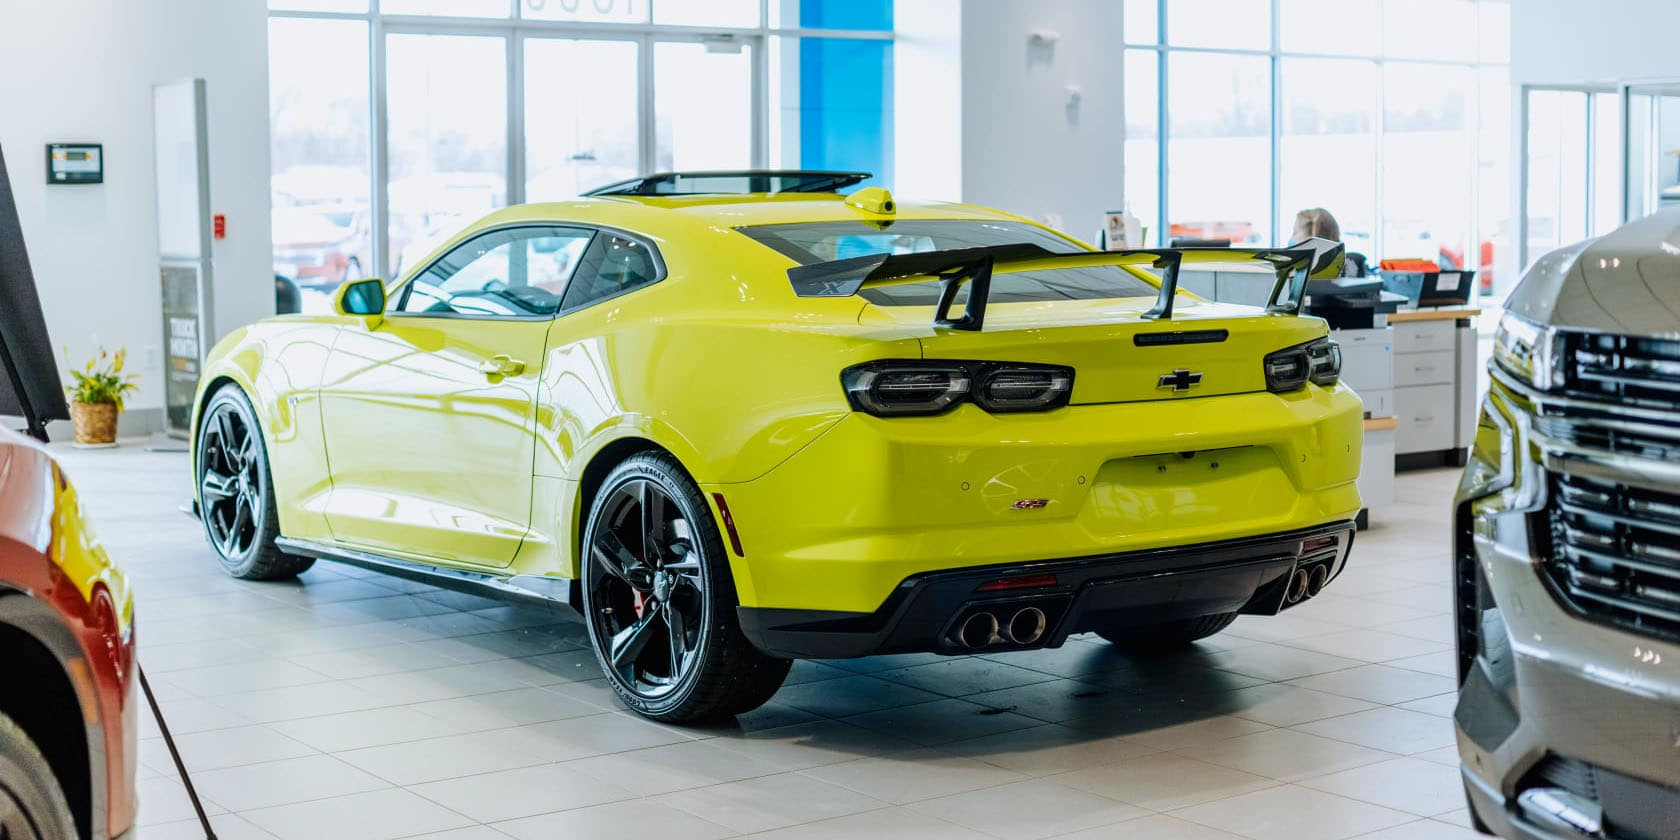 Chevy Camaro in showroom